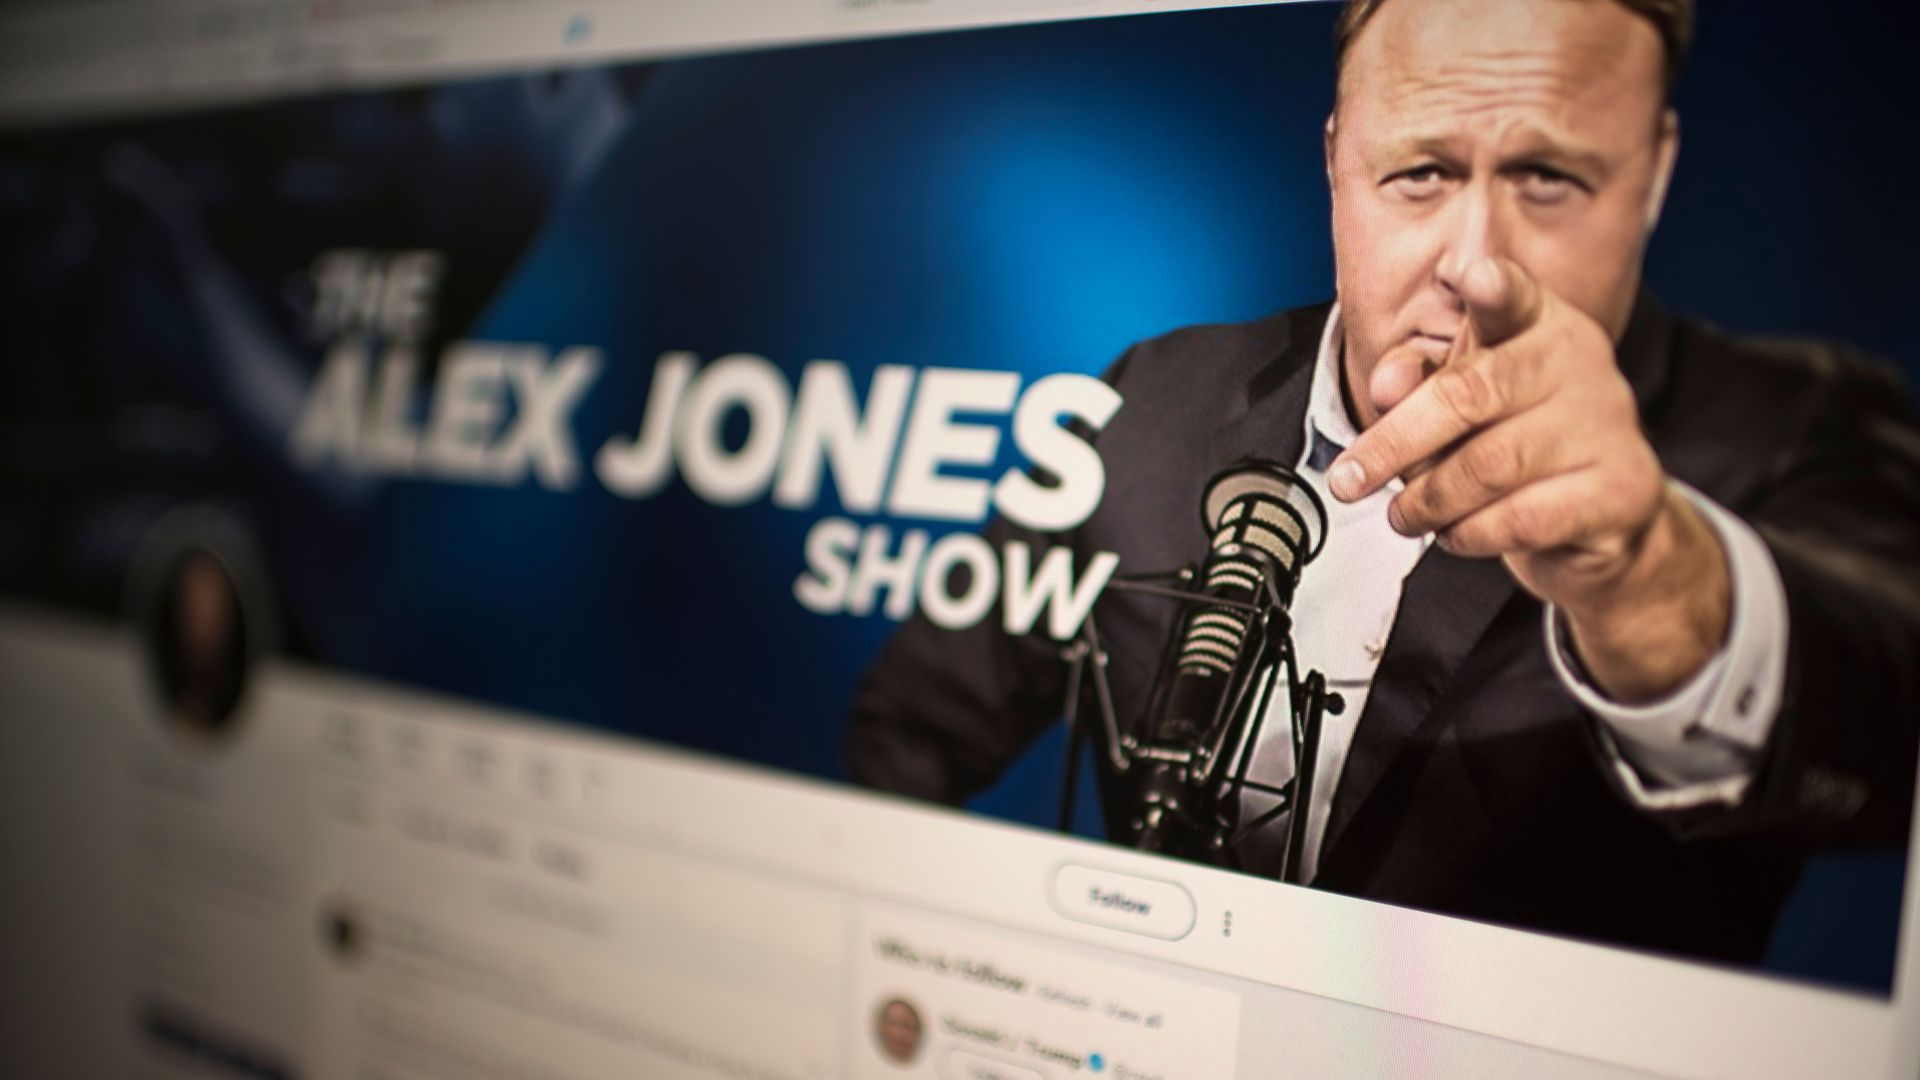 The Alex Jones facebook page